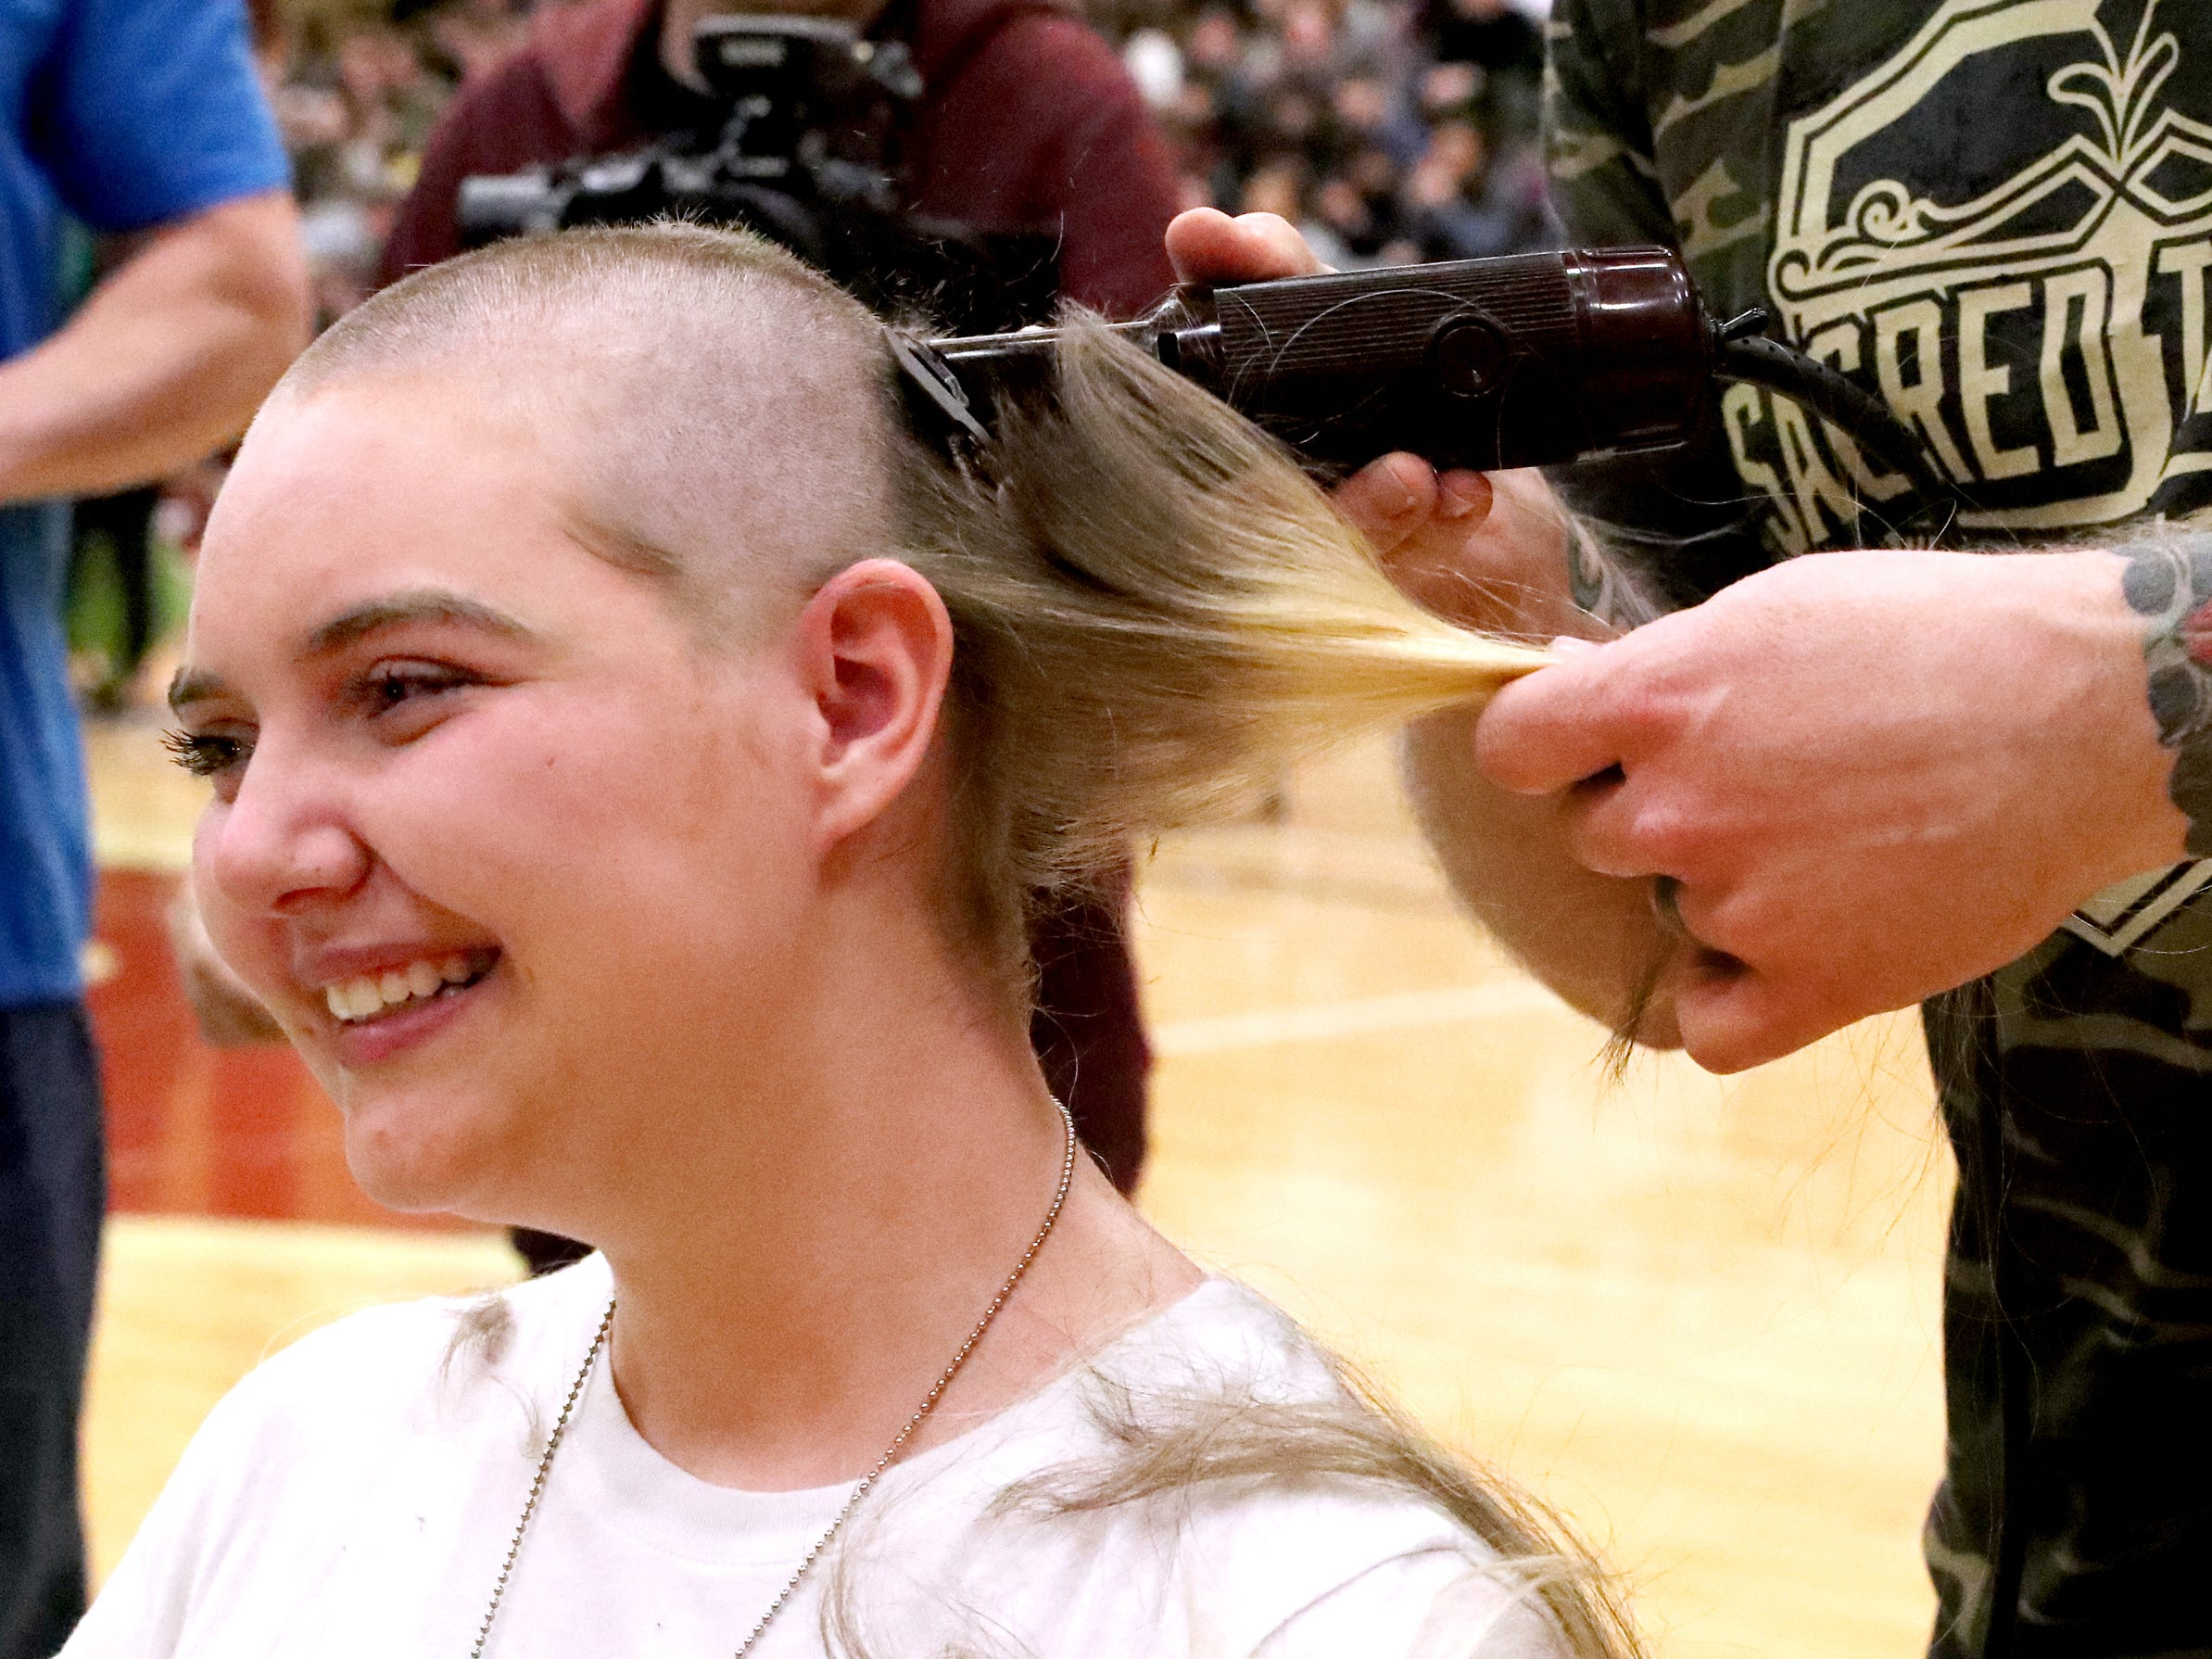 Kalianna Buck gets her head shaved during Riverdale High School's sixth annual Brave the Shave fundraiser to benefit St. Baldrick's Foundation on Thursday, March 21, 2019. The organization raises funds and awareness for childhood cancer.